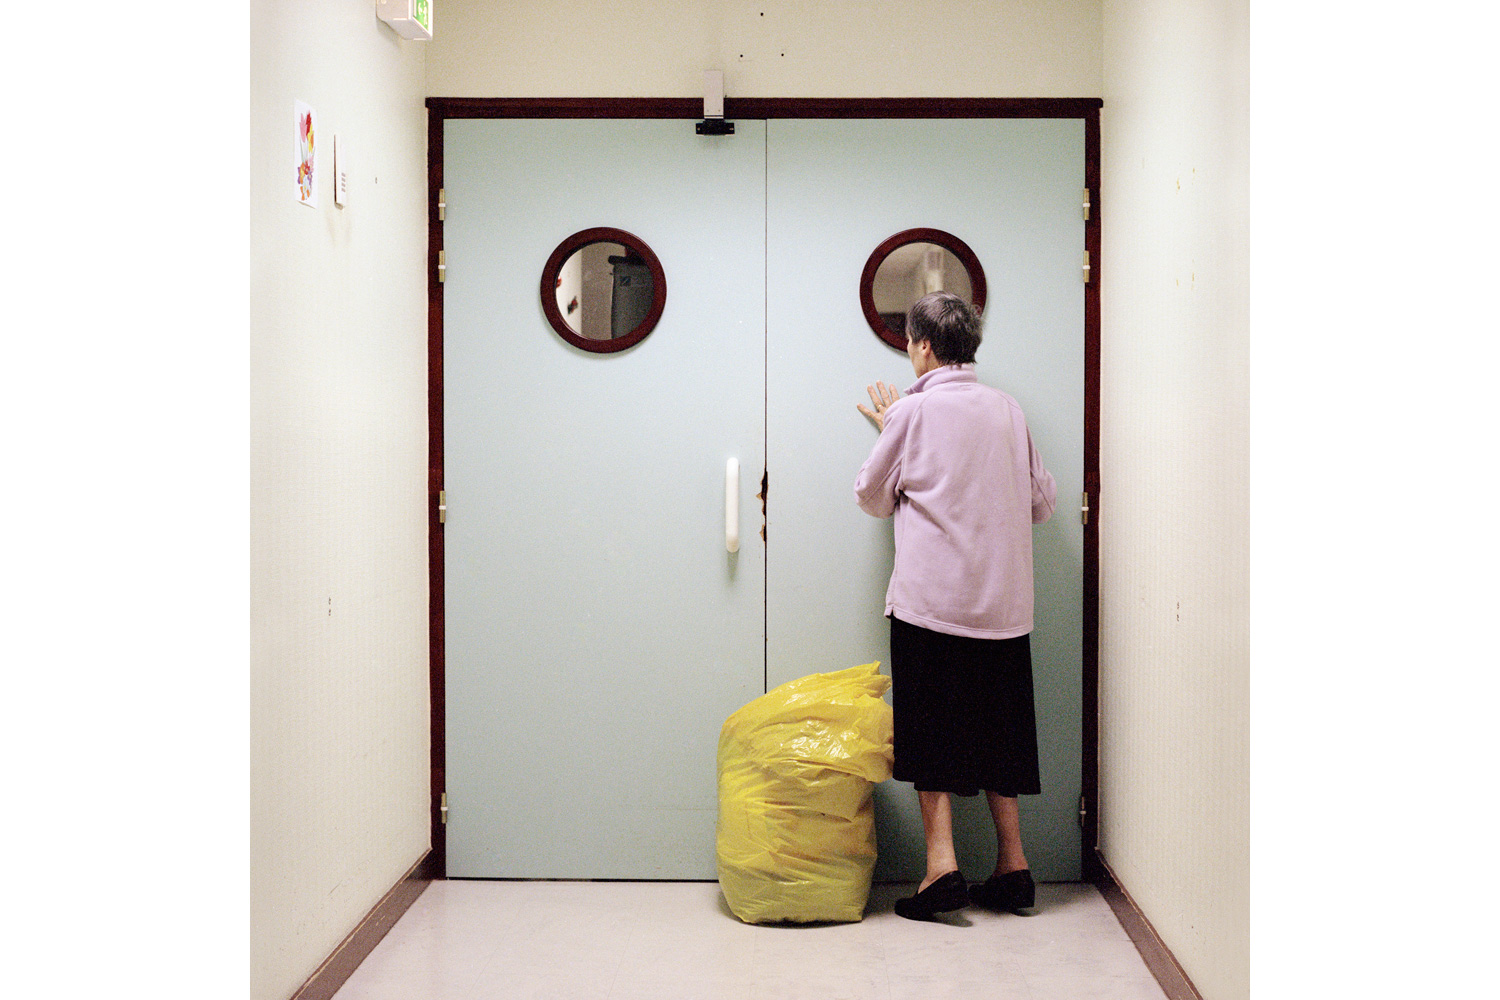 A resident stands in front of the locked ward door